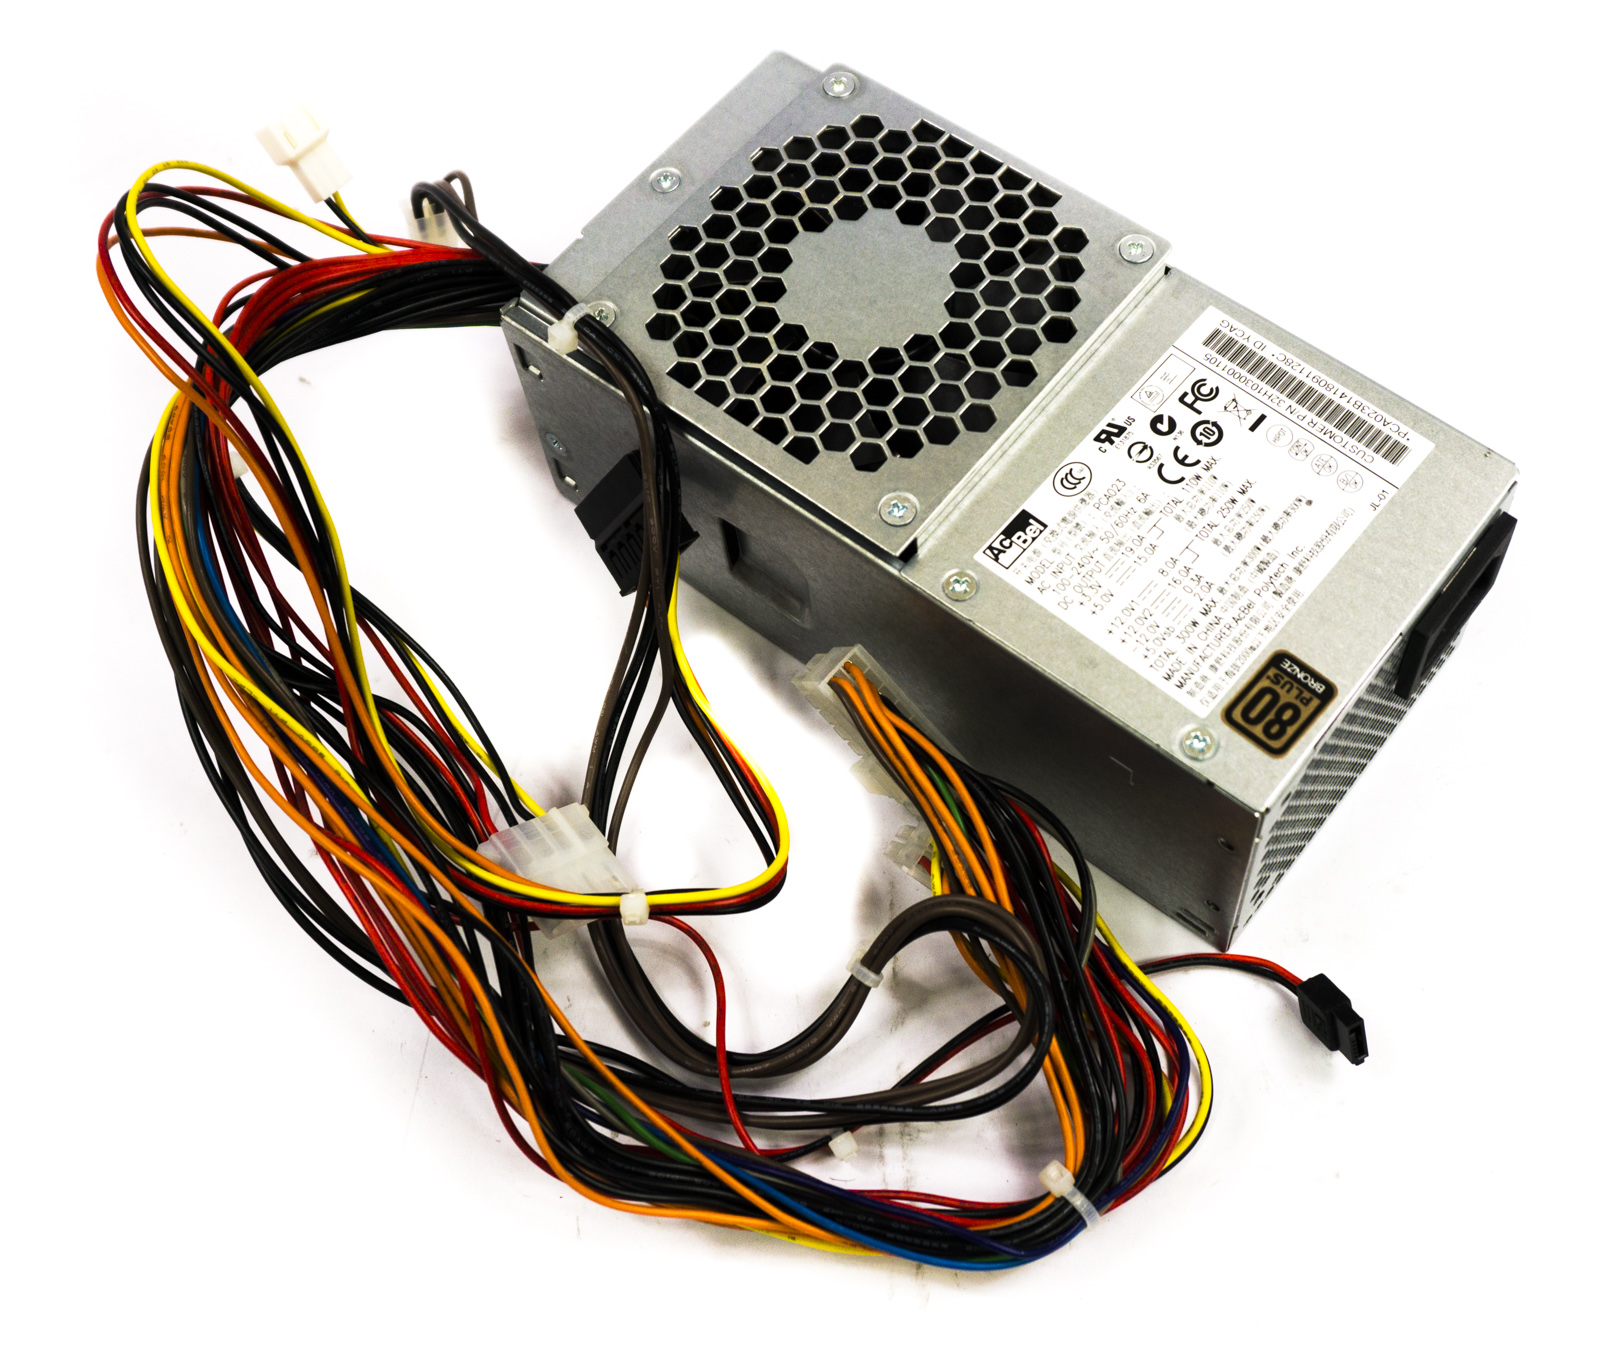 PCA023 Acbel 20/24-Pin SFF ATX 300W PC Power Supply